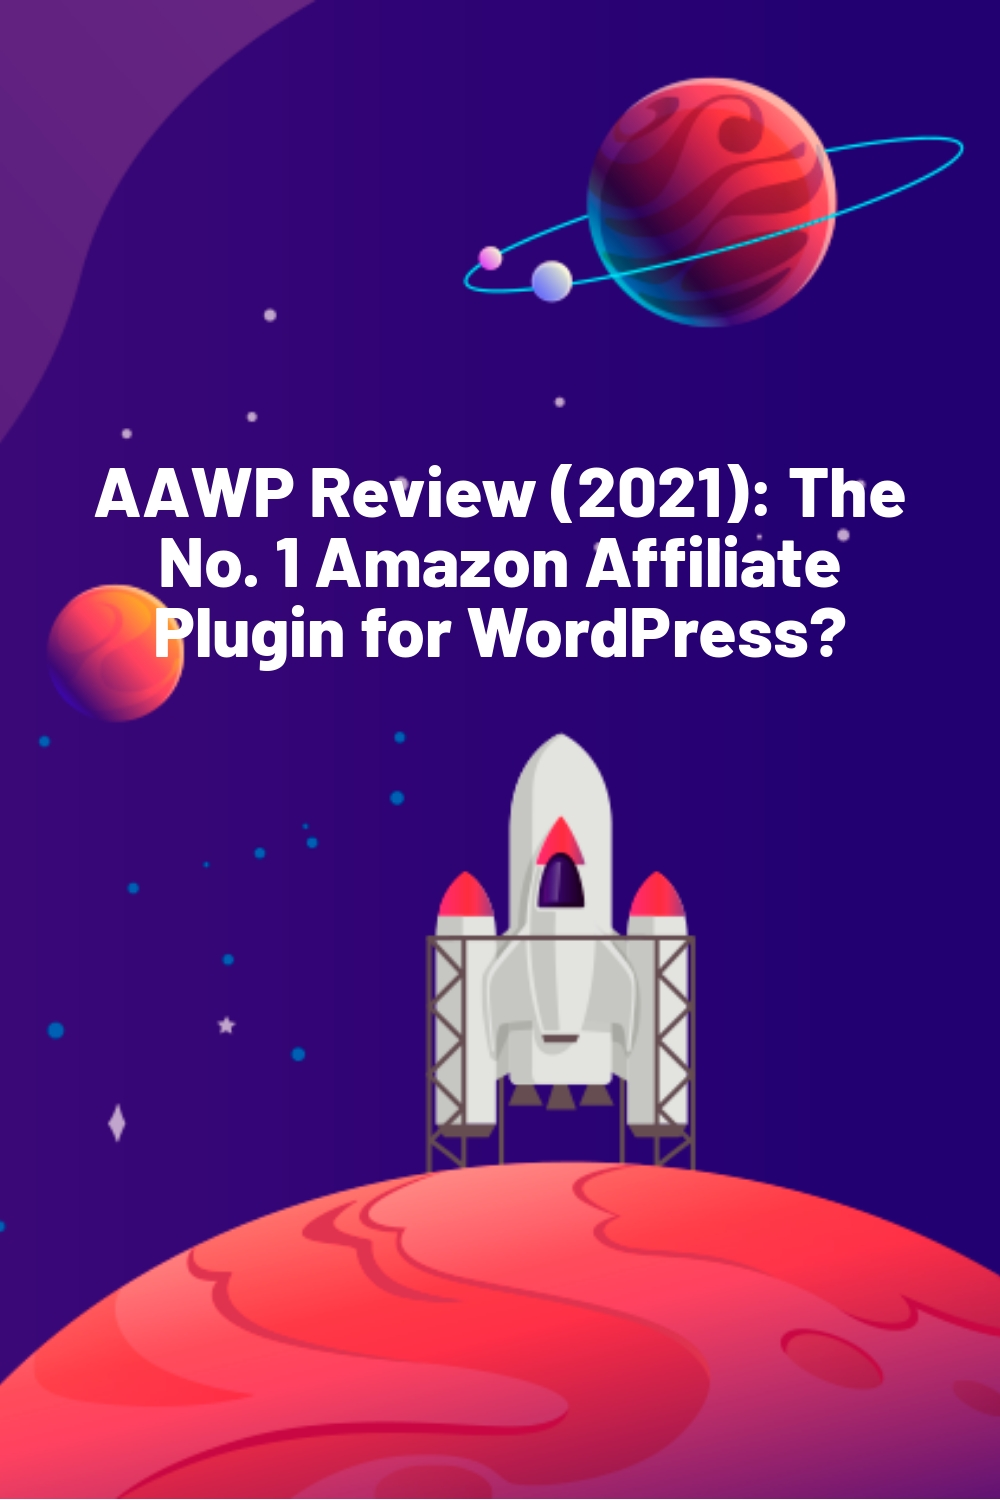 AAWP Review (2021): The No. 1 Amazon Affiliate Plugin for WordPress?